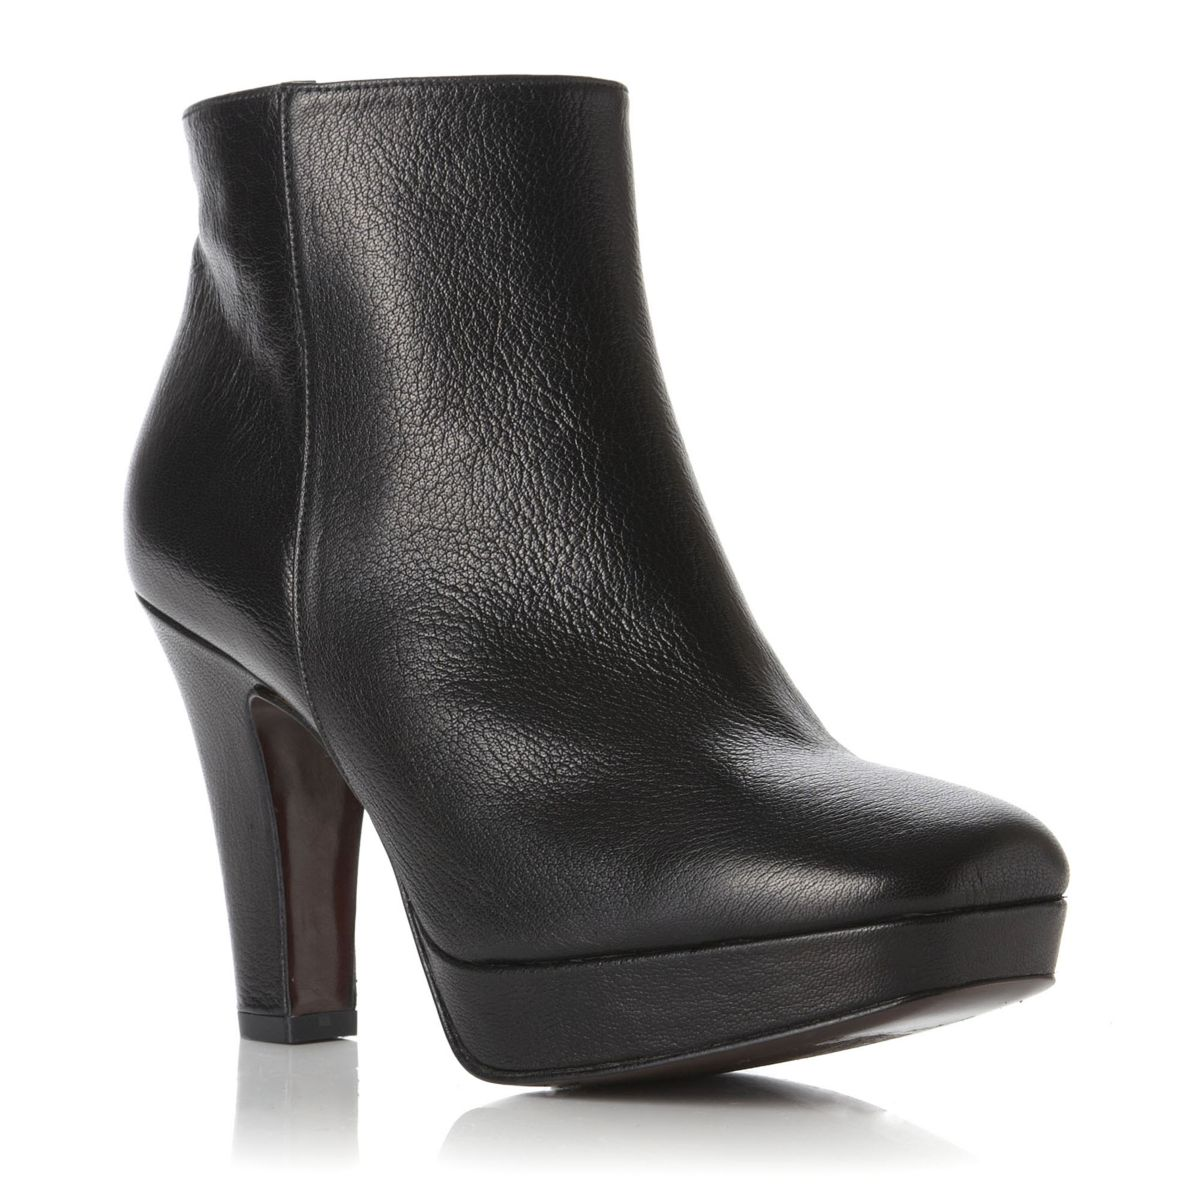 High Heel Ankle Boots Browse our collection of stunning, high-heeled ankle boots for workday glamour, weekend chic and evenings out. Expertly cut and crafted in gorgeous leathers and suedes, these are high heeled ankle boots at their best.